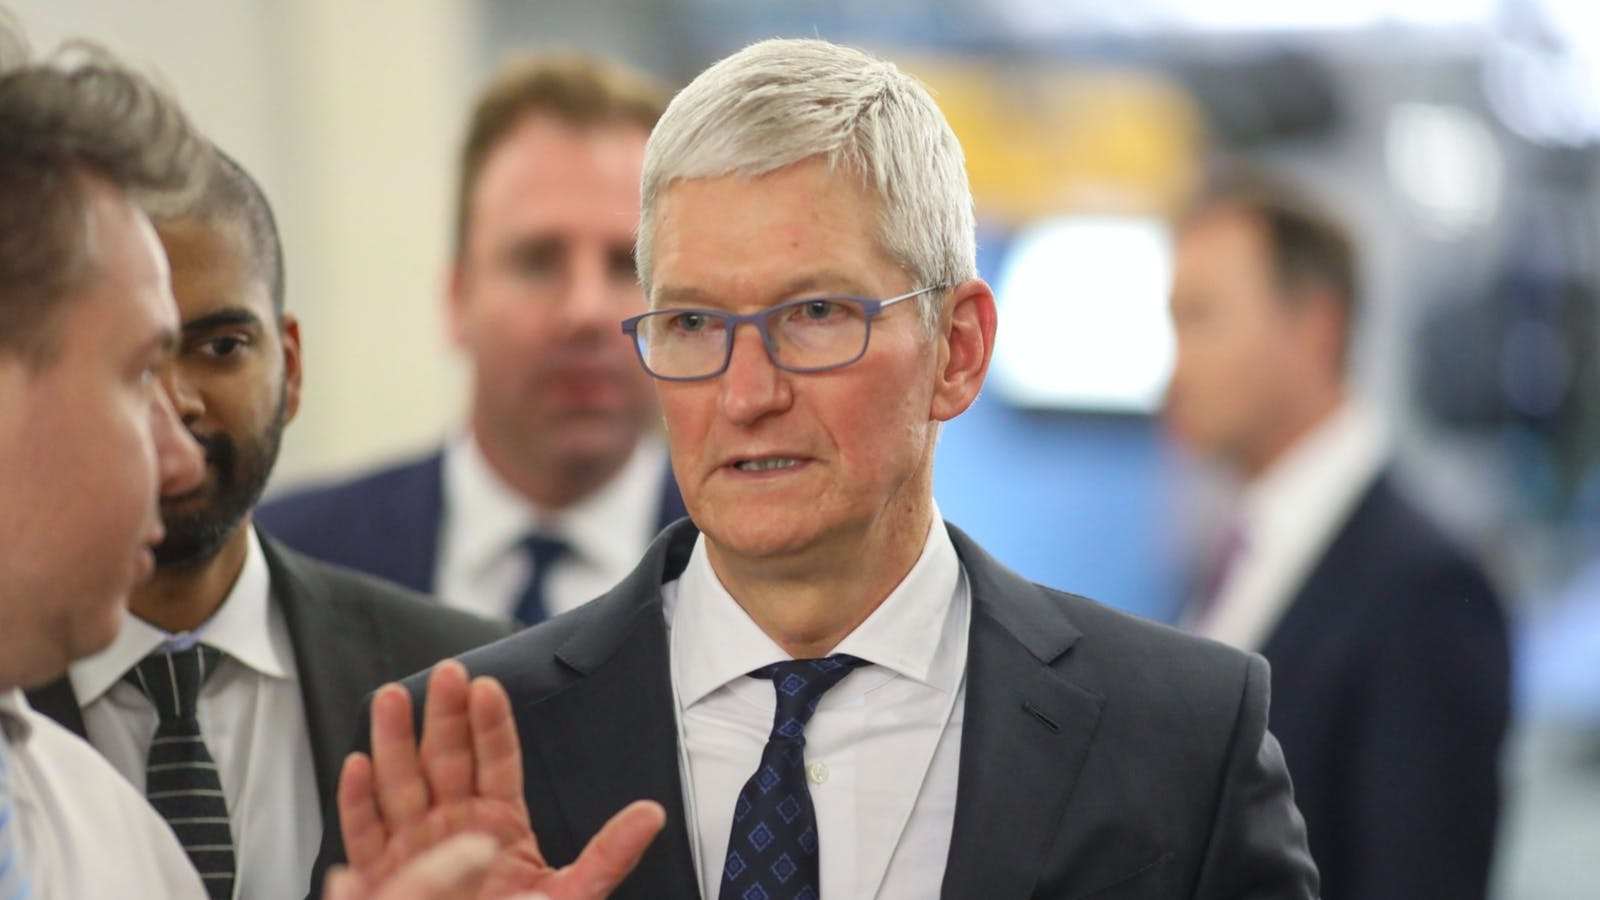 Apple CEO Tim Cook at the World Economic Forum in Davos, Switzerland, this month. Photo by Bloomberg